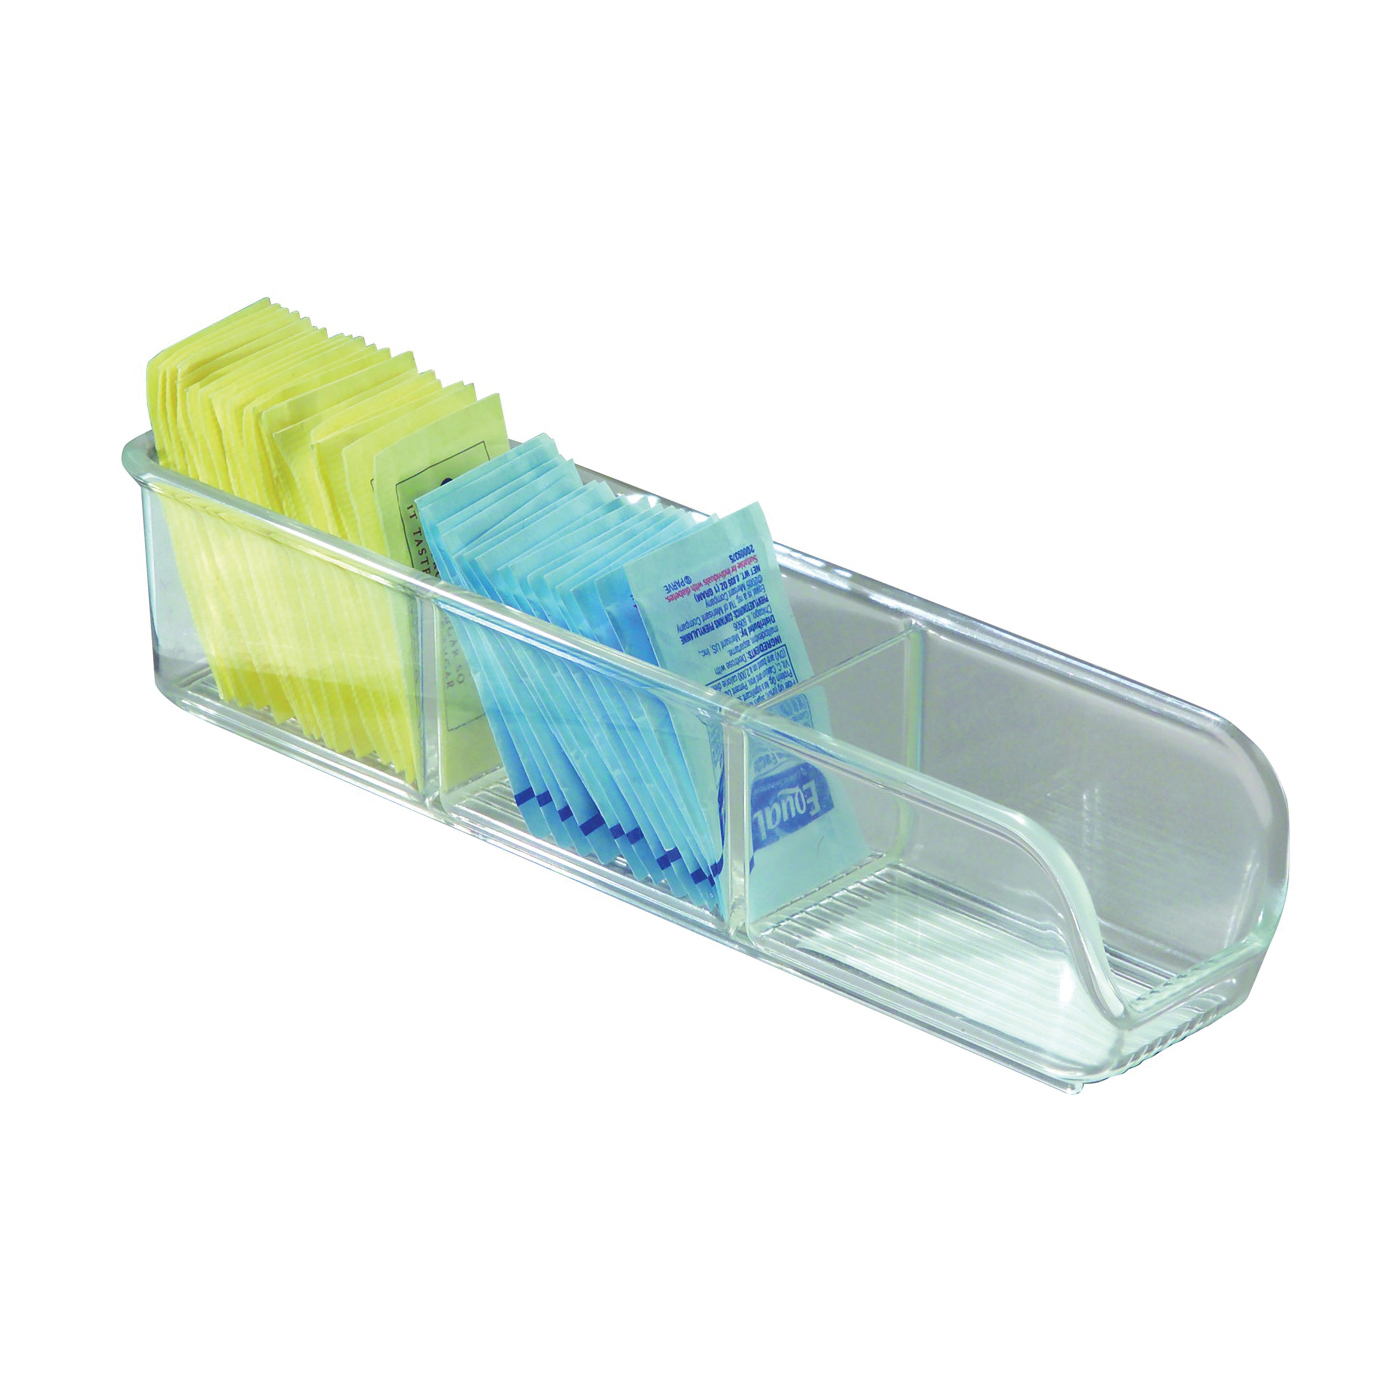 Picture of iDESIGN LINUS 66730 Sugar Packet Holder, Plastic, Clear